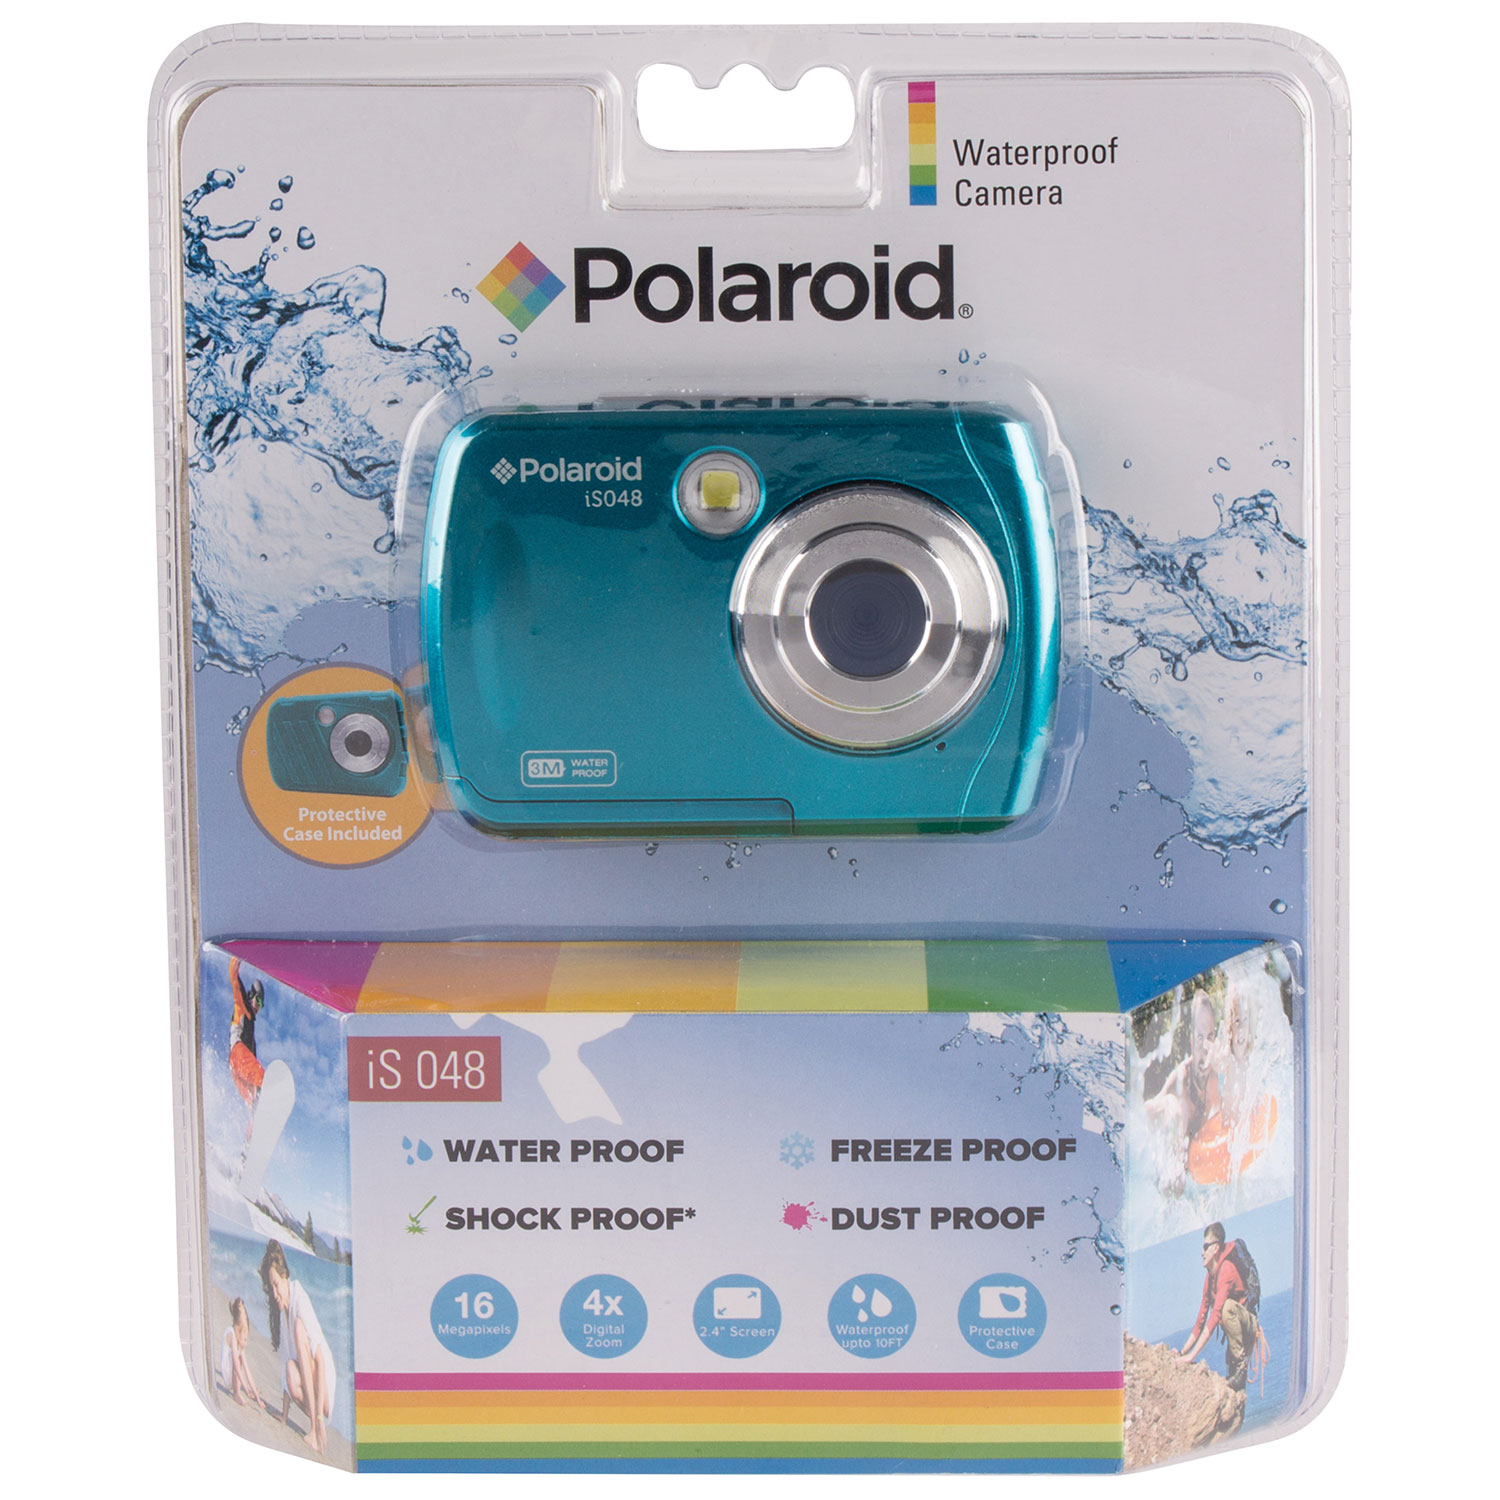 Polaroid Iso48 Waterproof 16mp 4x Optical Zoom Digital Camera Teal Diagram Film My Journey Point And Shoot Cameras Best Buy Canada